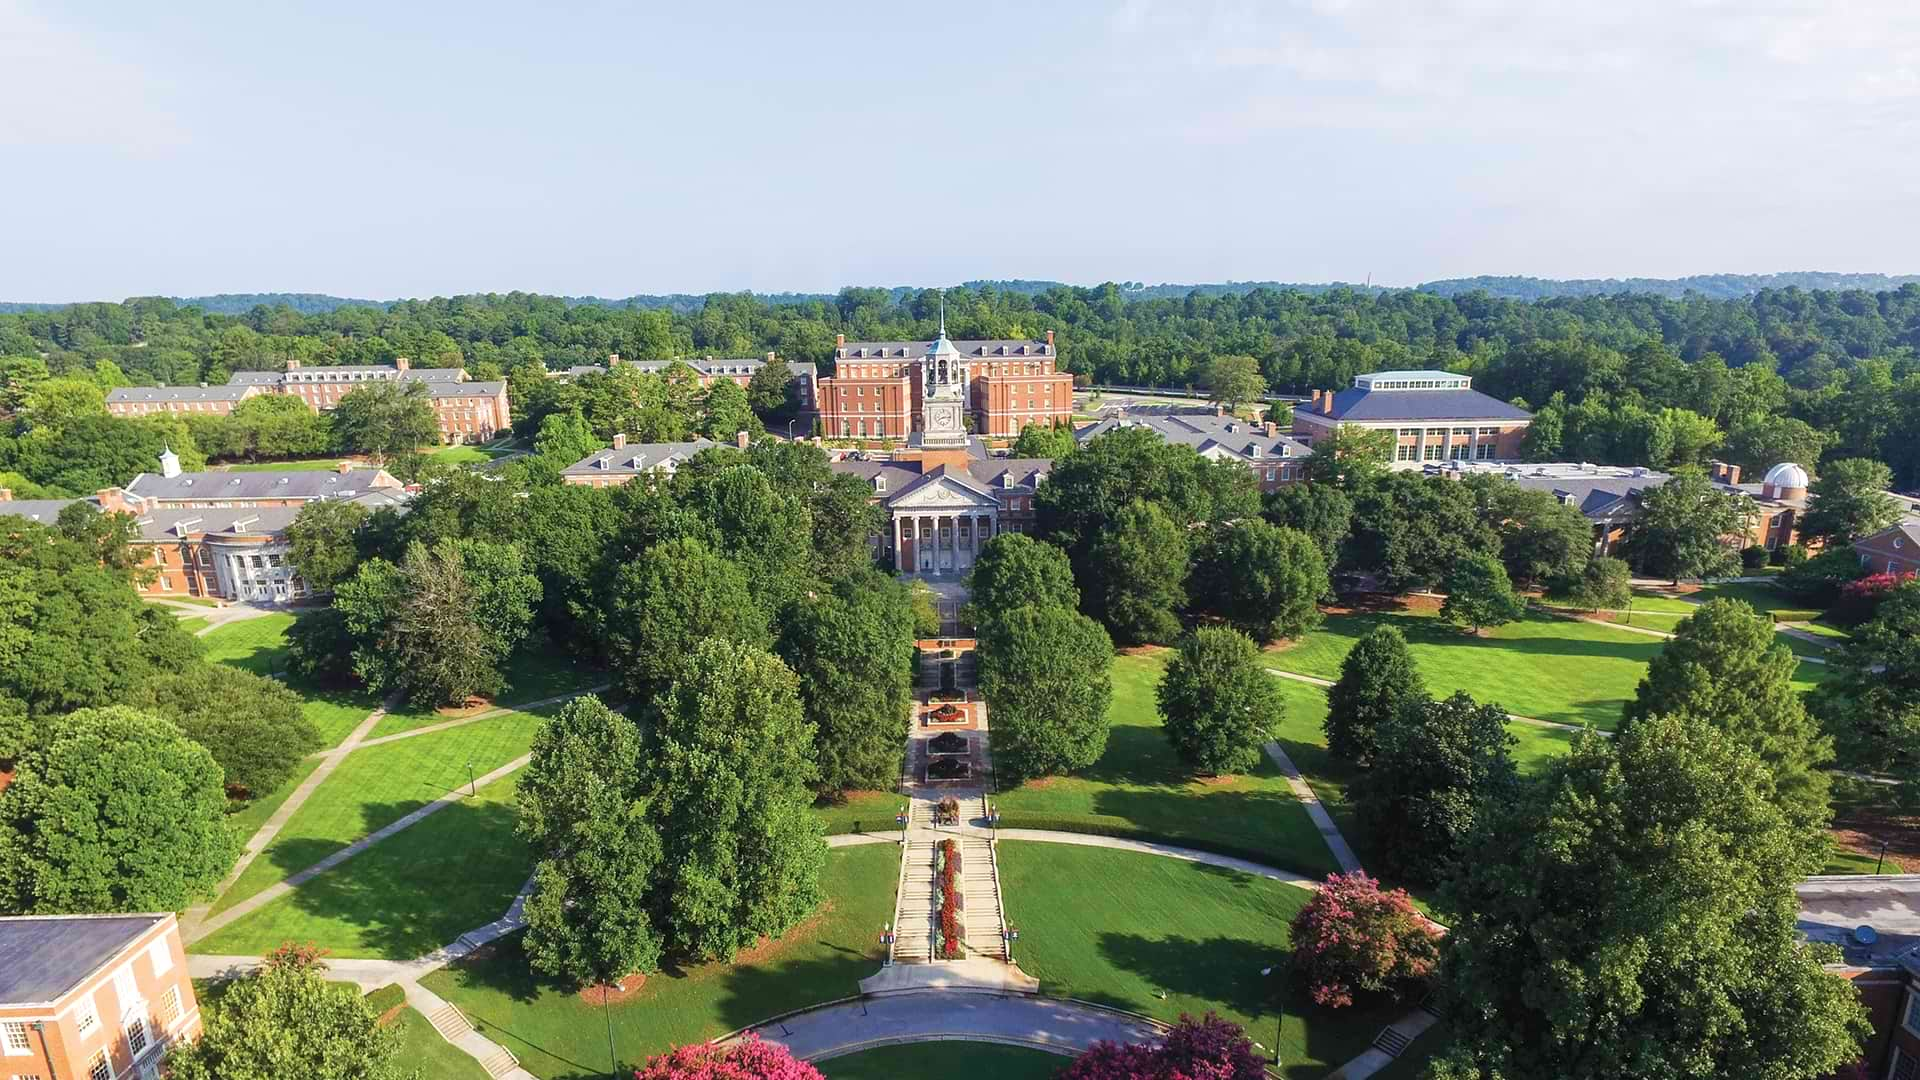 aerial view of campus looking north